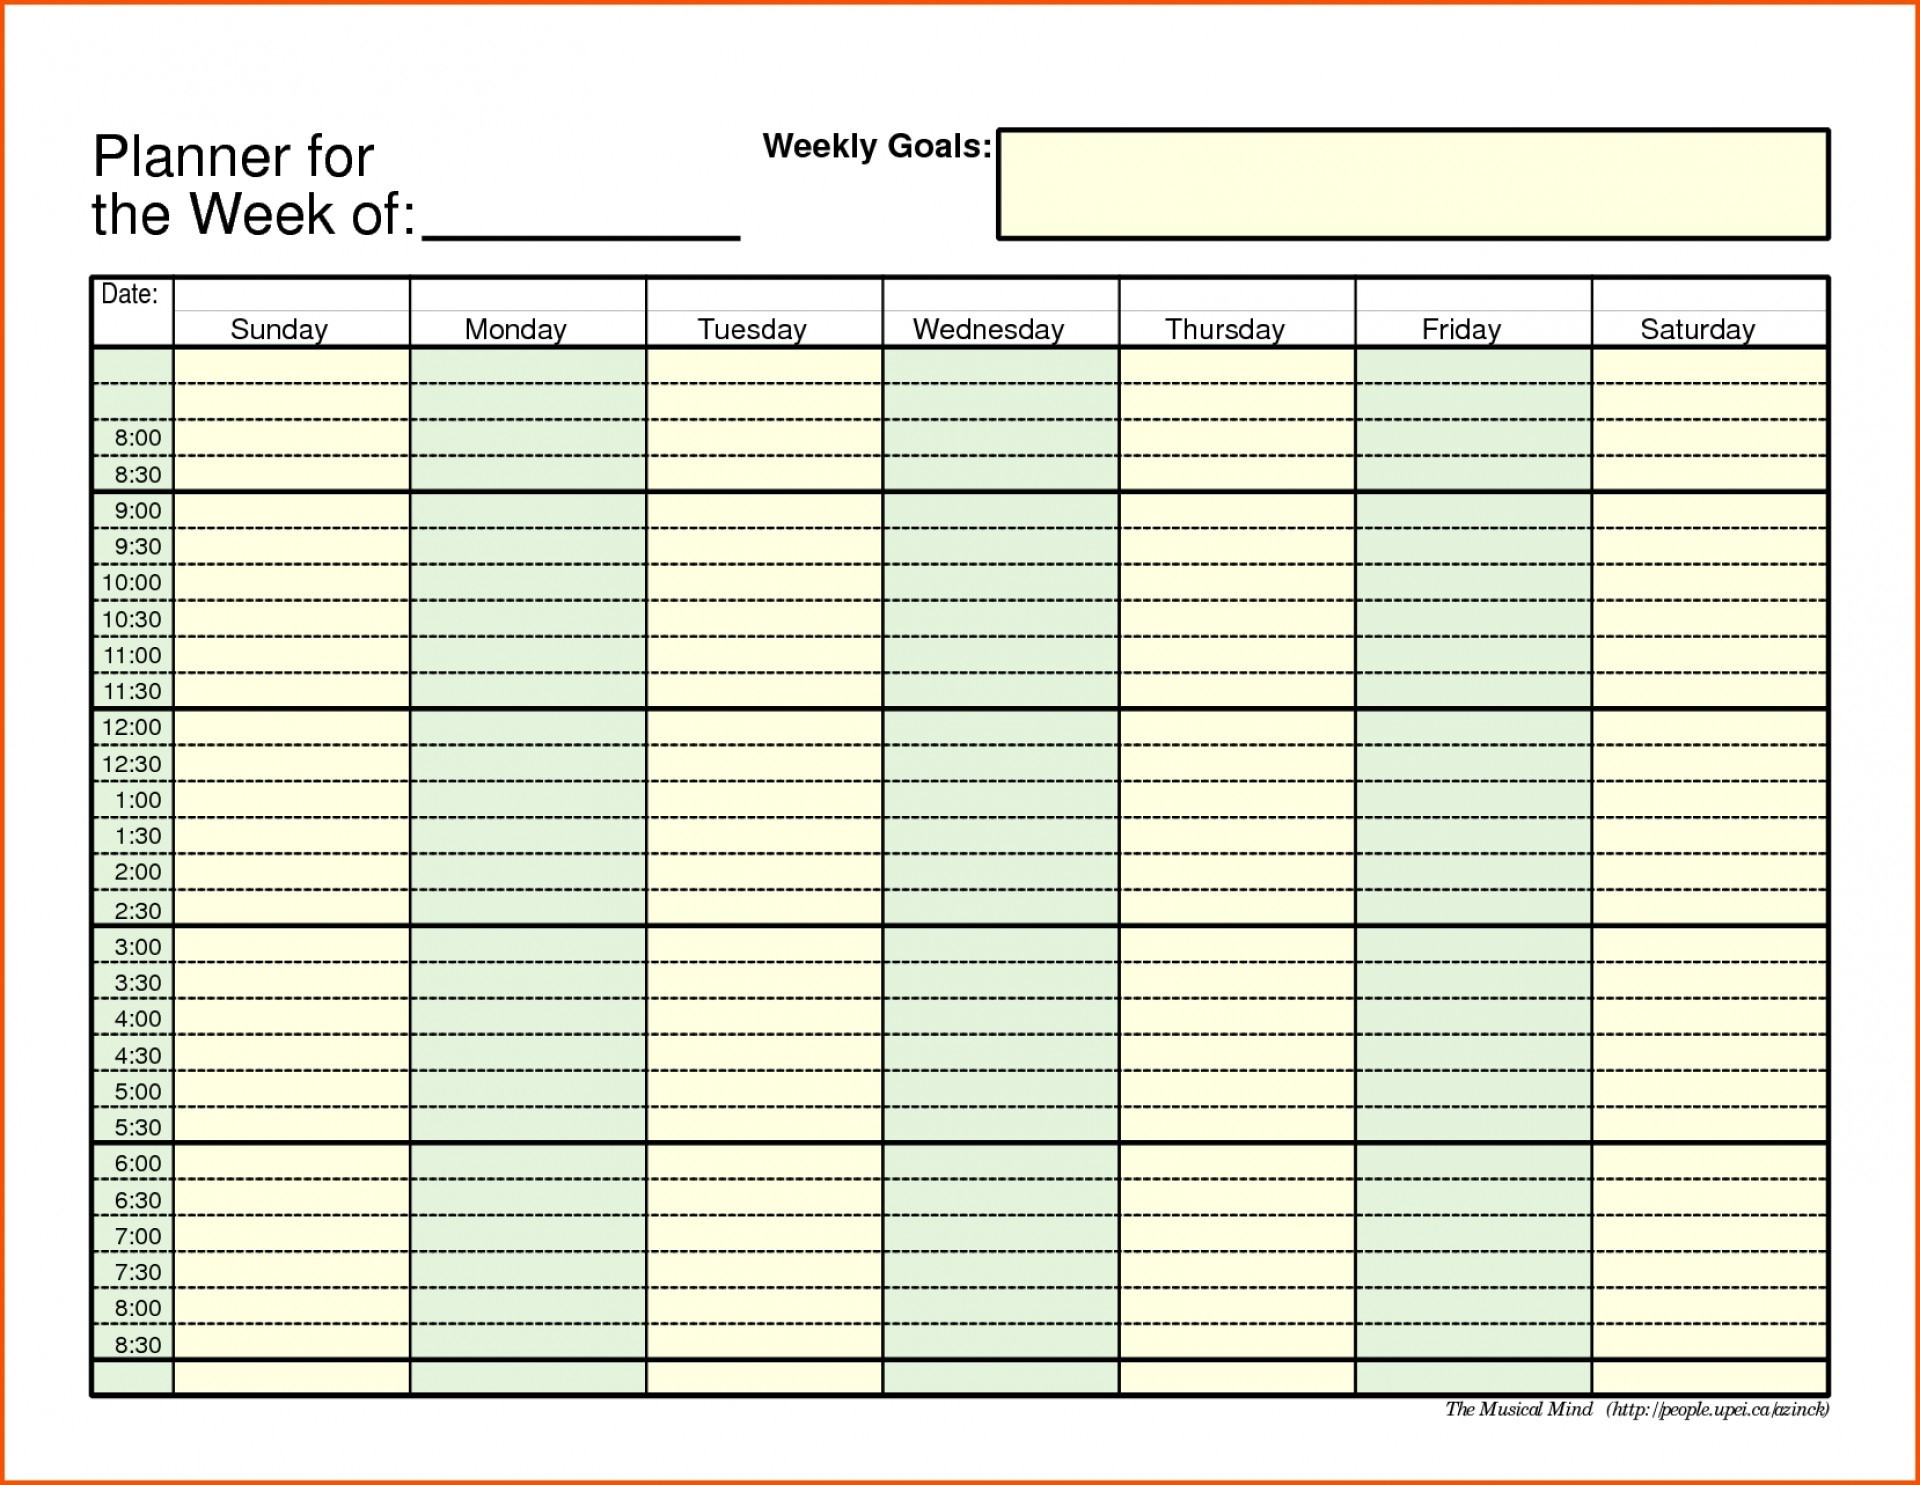 Daily Schedule With Time Slots - Calendar Inspiration Design  Printable Calendar With Time